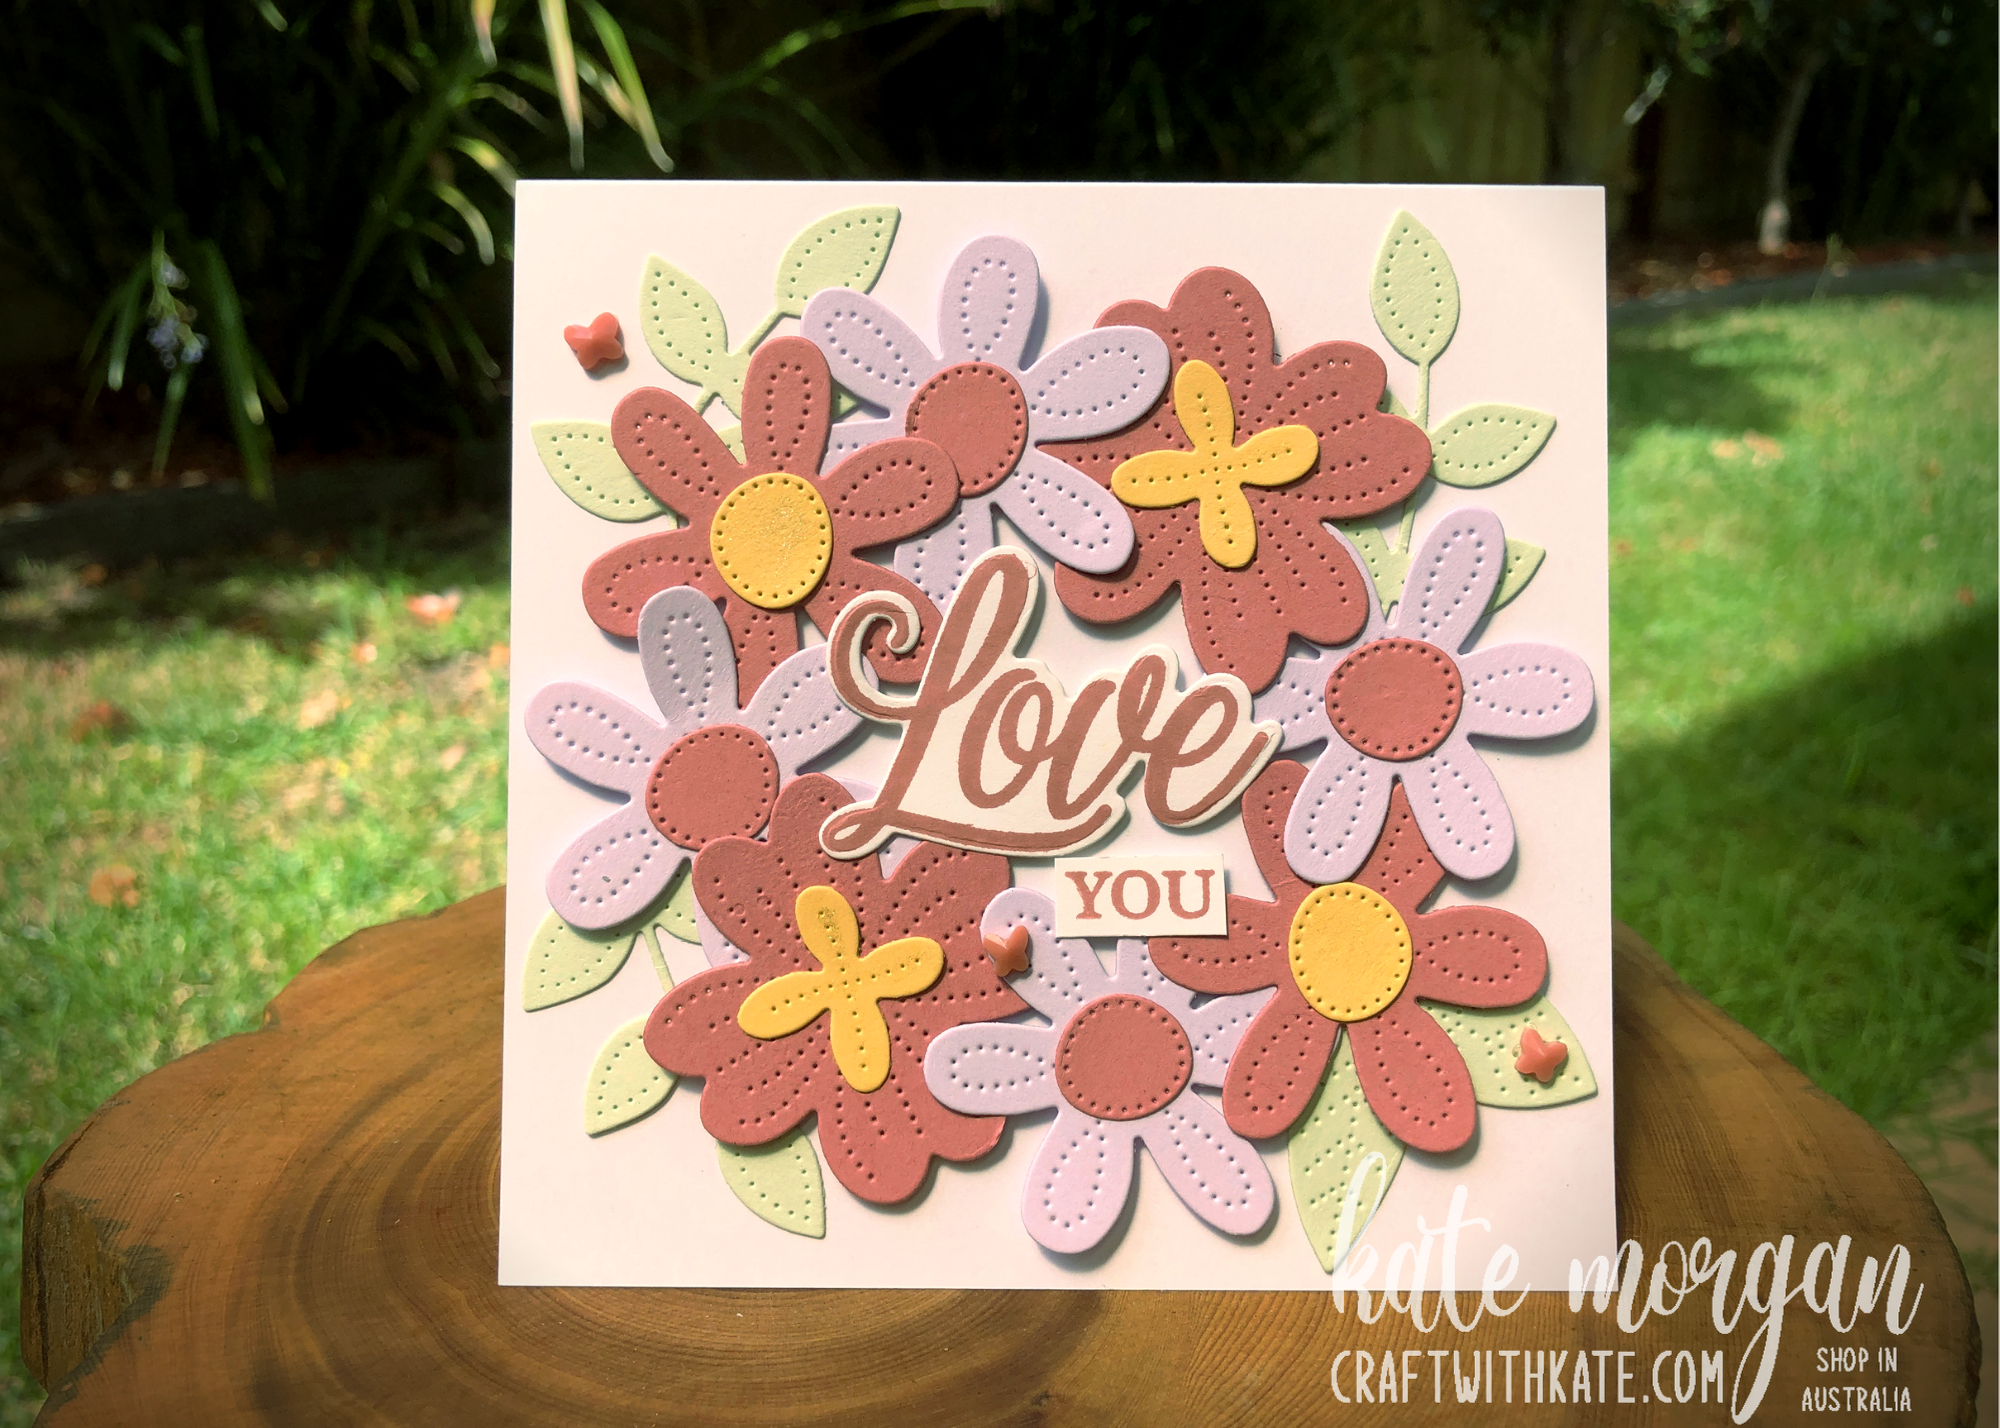 Pierced Blooms Love You card by Kate Morgan, Stampin Up Australia 2021 .